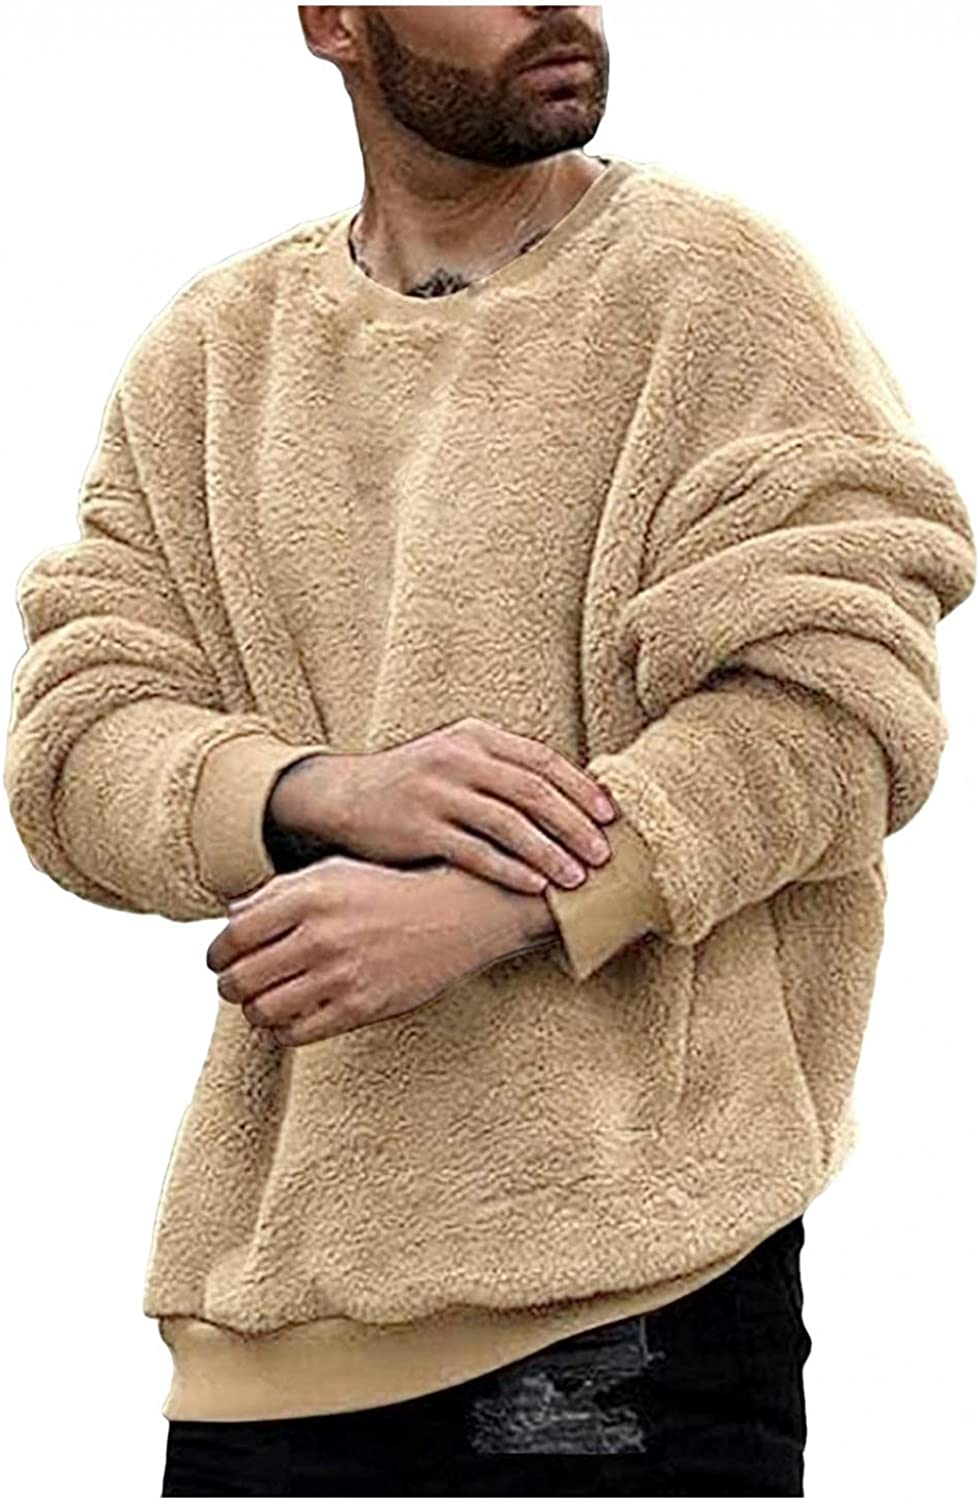 LEIYAN Mens Fuzzy Fleece Pullover Long Sleeve Casual Oversized Fluffy Shearling Sherpa Lined Sweatshirts Jumpers Tops